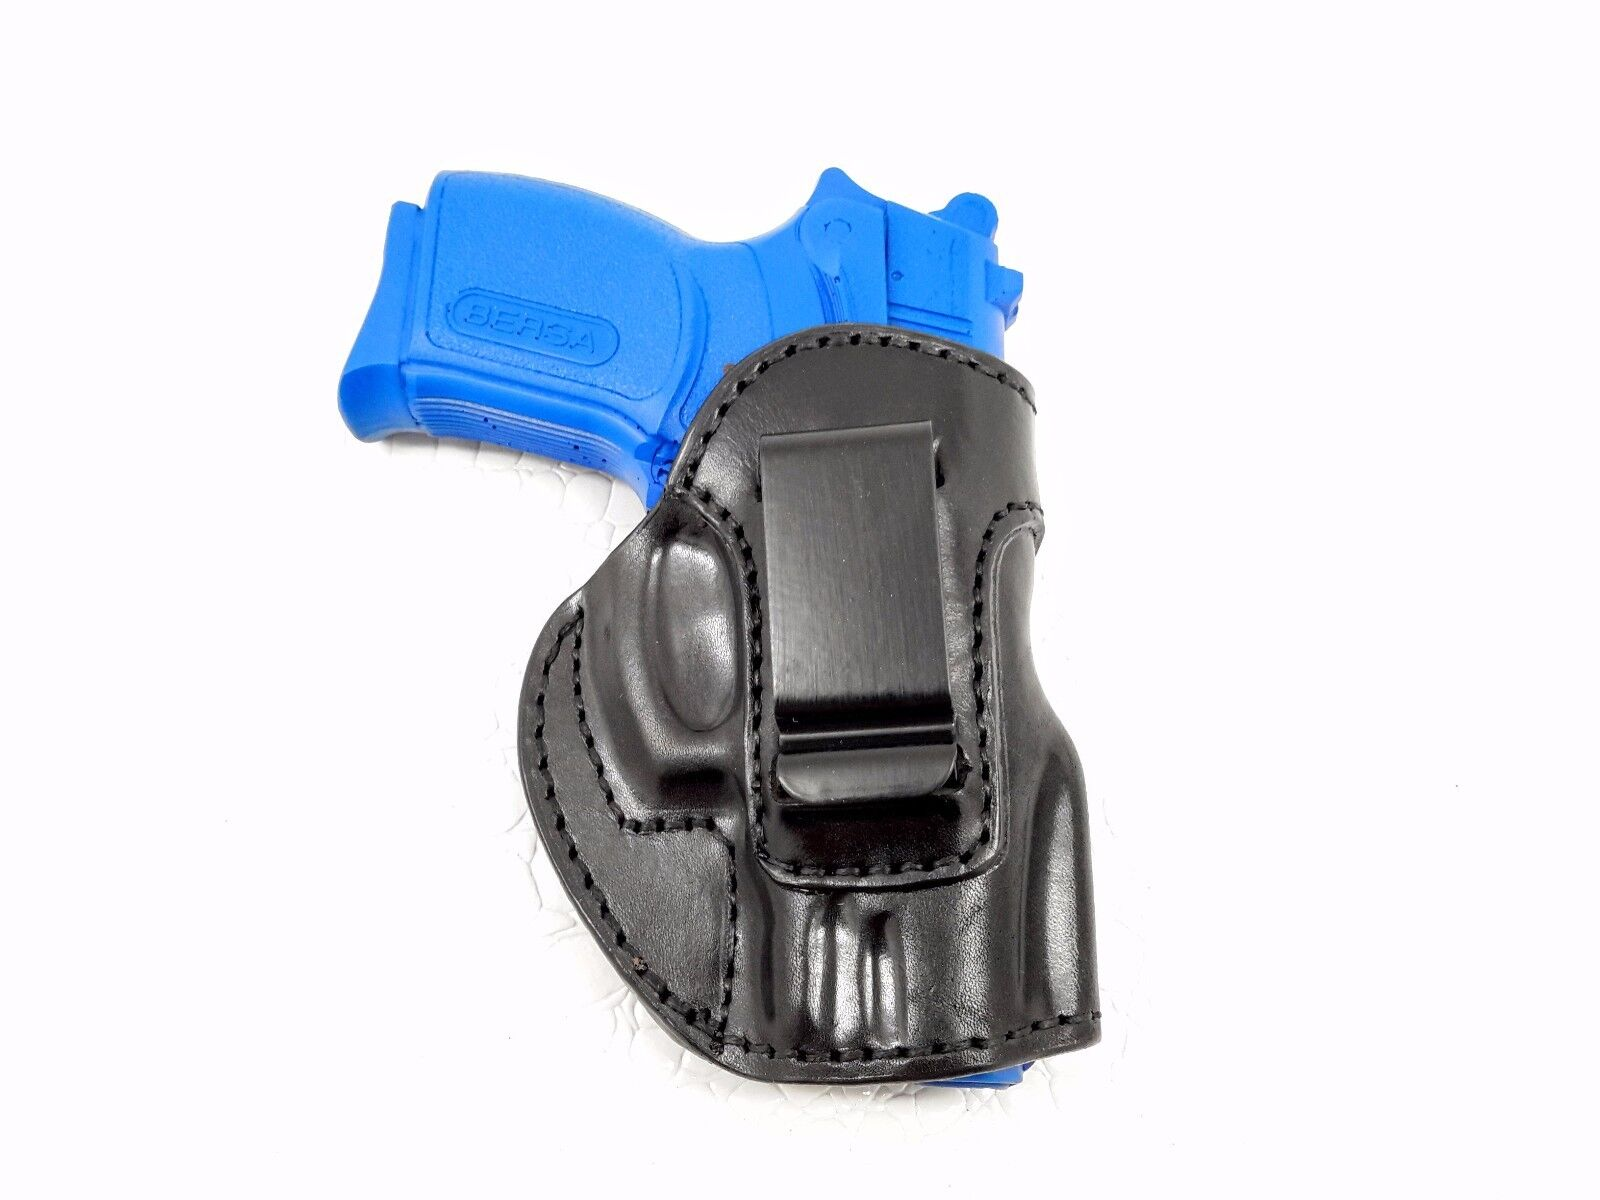 IWB Inside the Waistband holster for Smith & Wesson M&P Shie